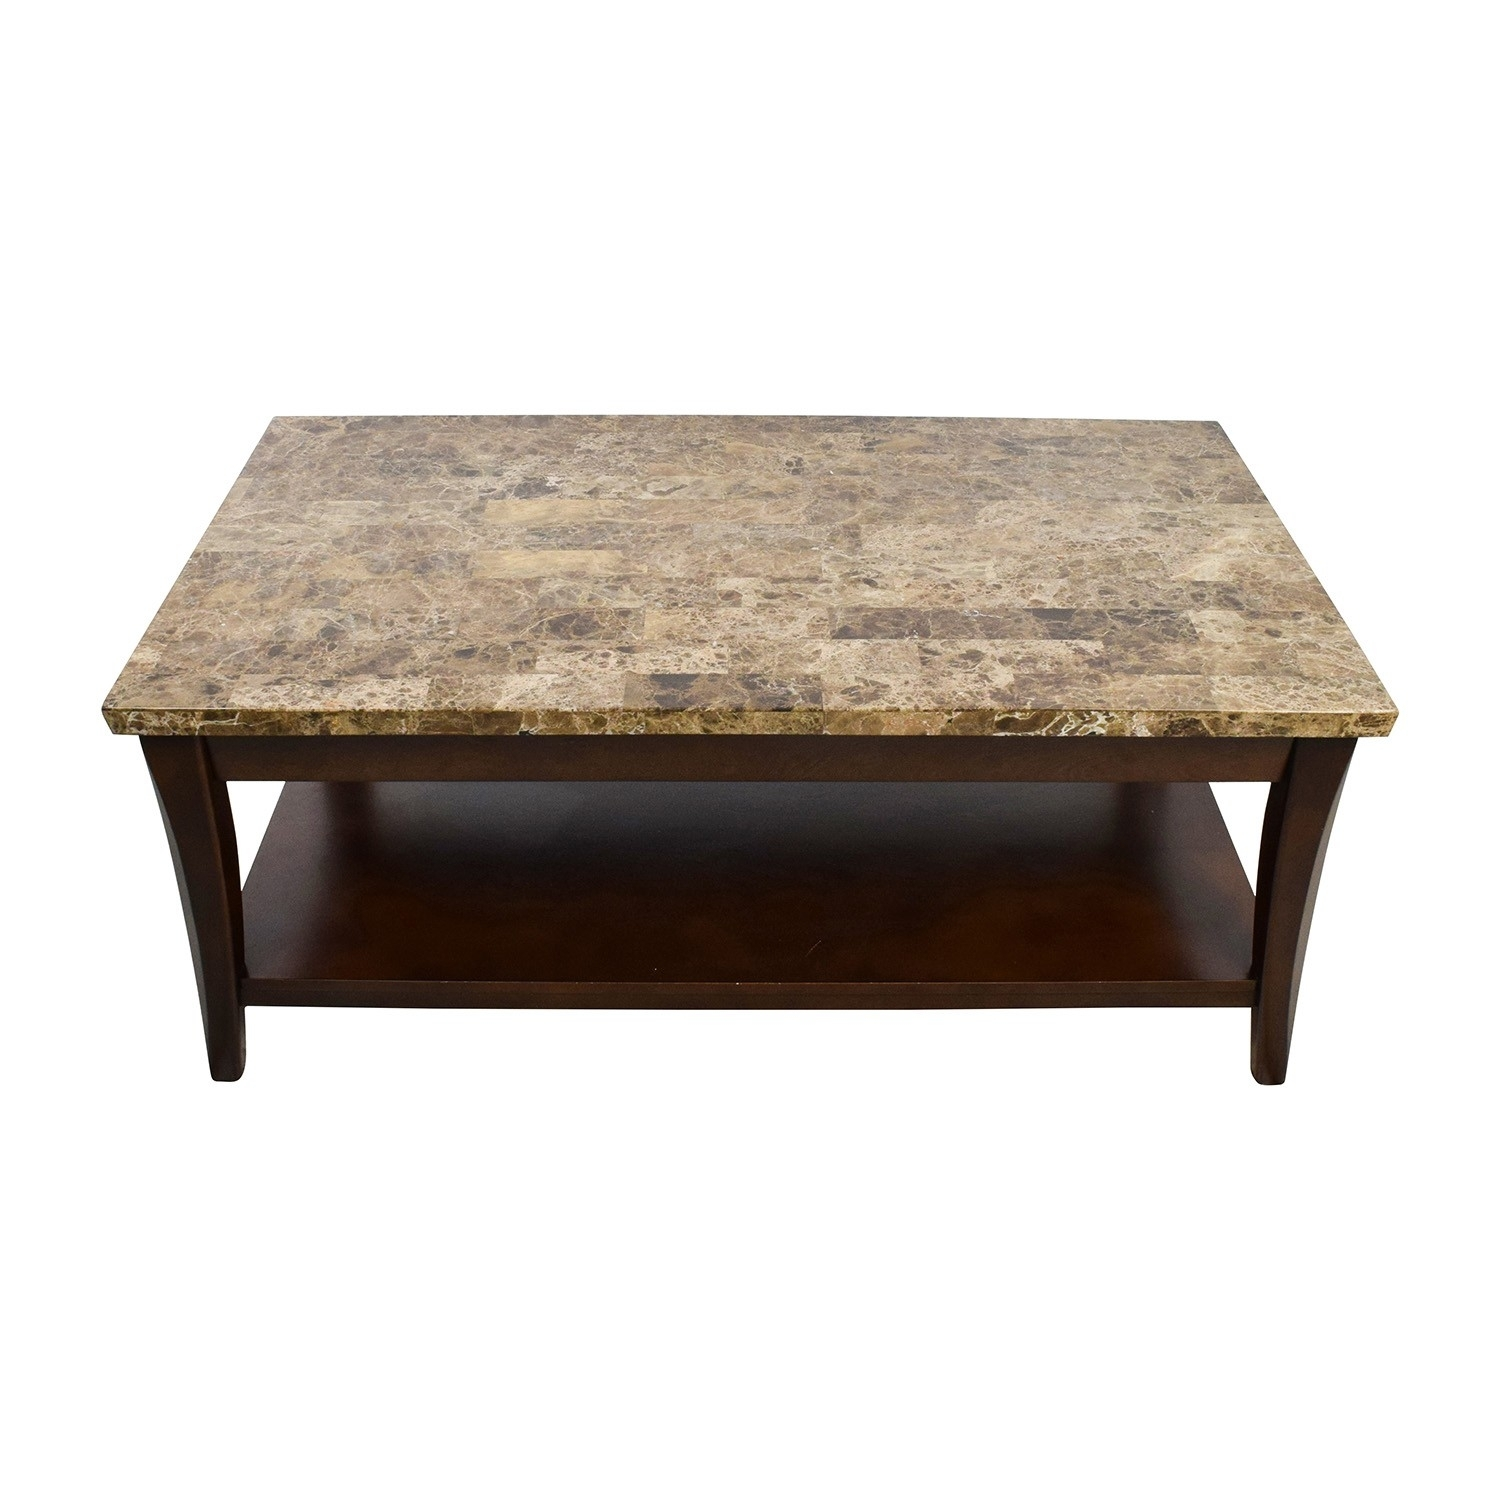 Marble And Wood Coffee Tables Pacific Timothy Oulton Table Ts 2 throughout Suspend Ii Marble And Wood Coffee Tables (Image 18 of 30)